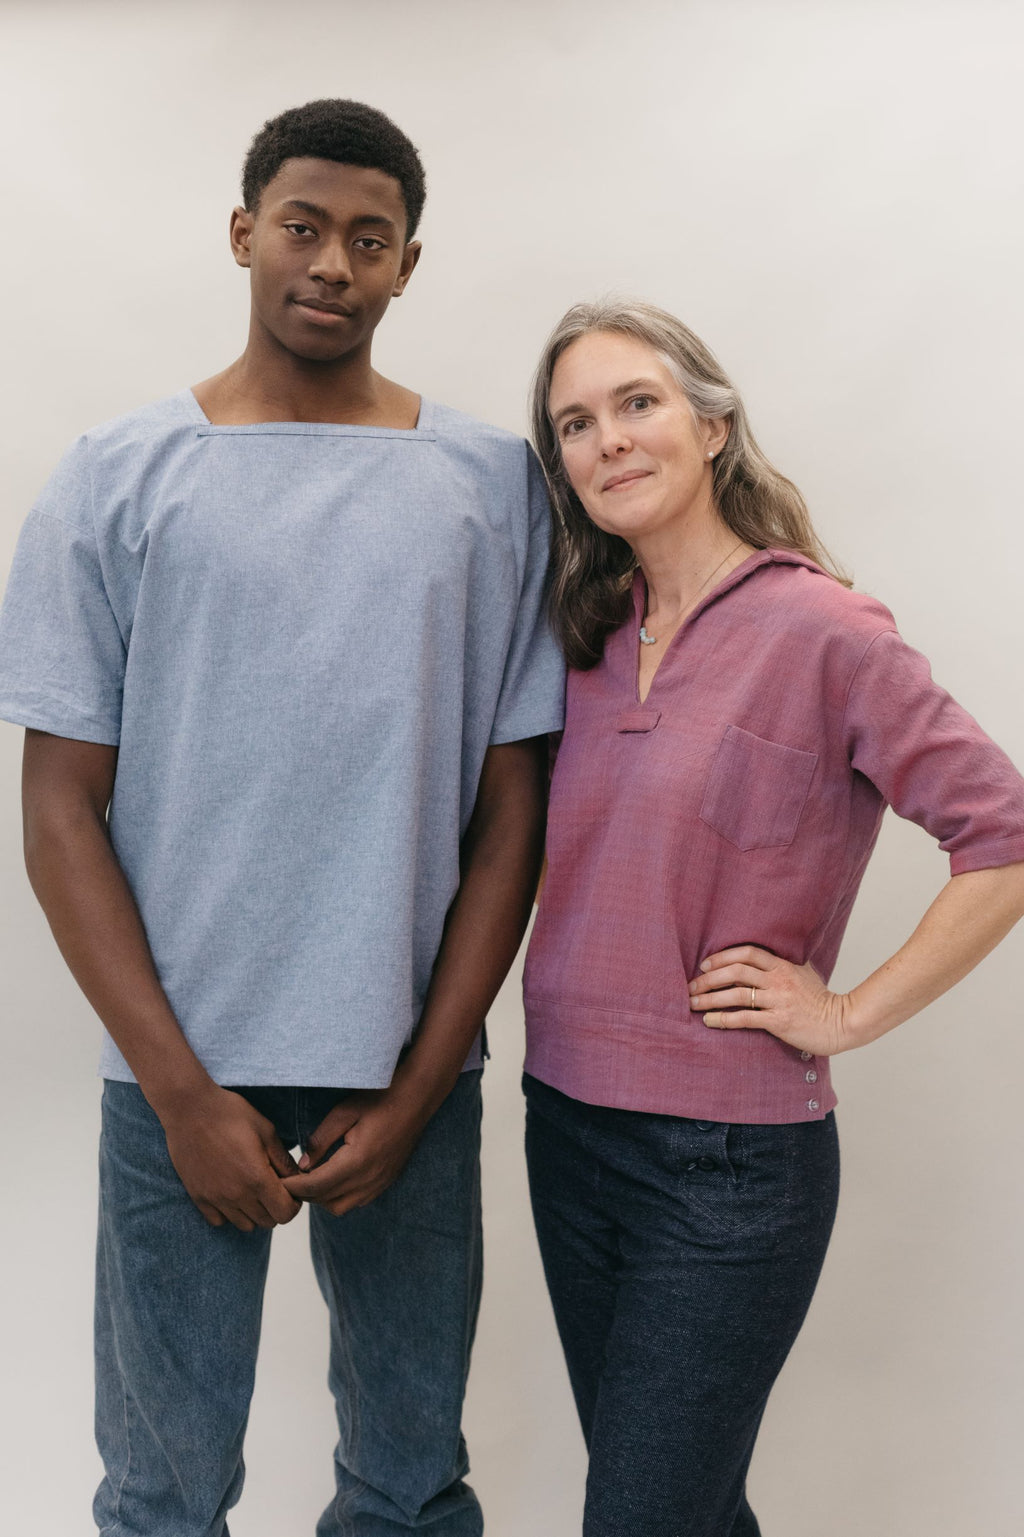 Man and woman wearing middy shirts (one blue and one pink) standing in front of a white background